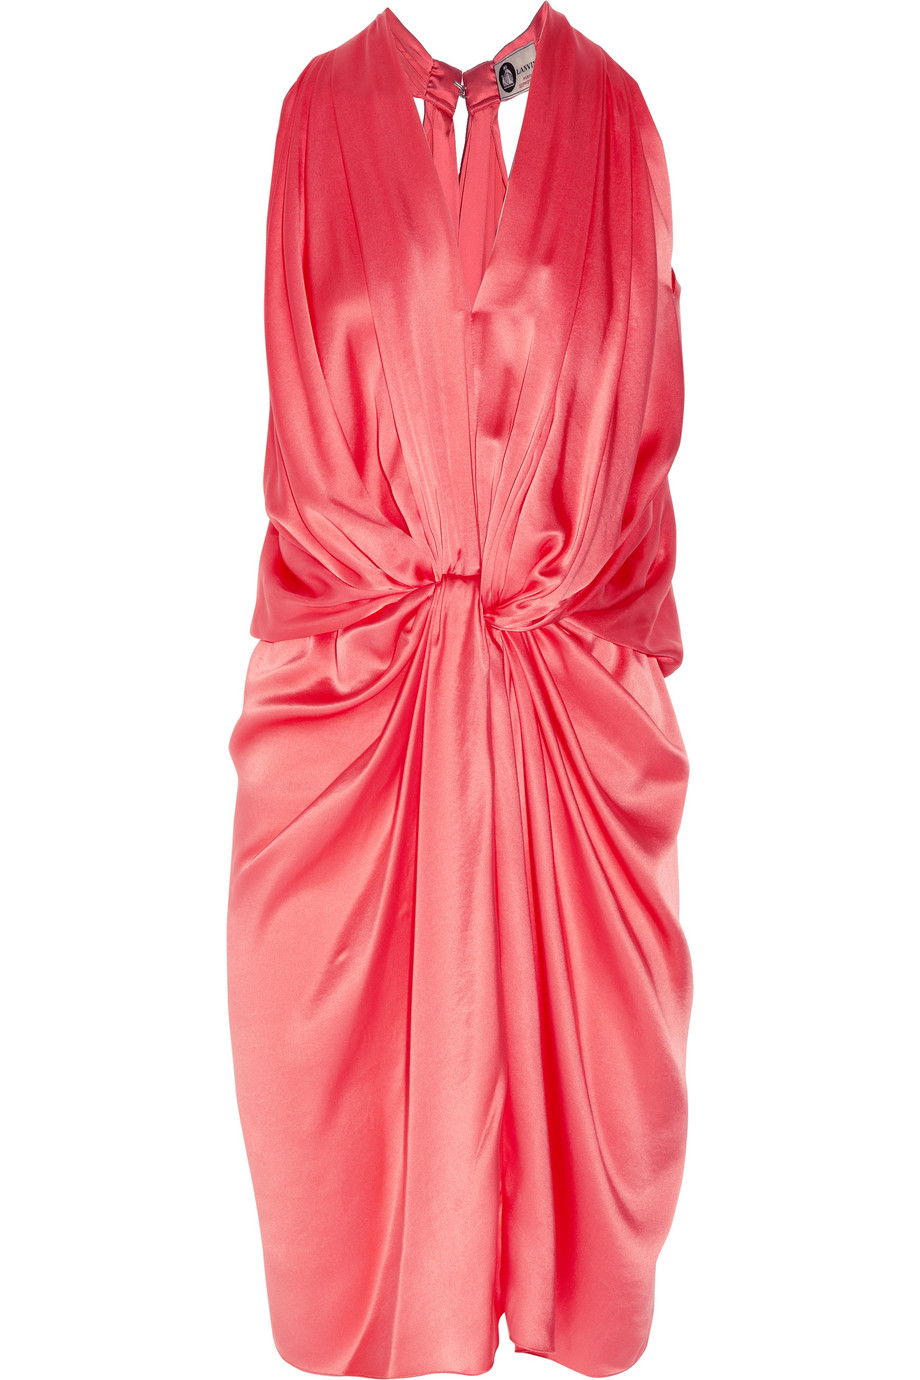 The Shop Satin Silk Dress